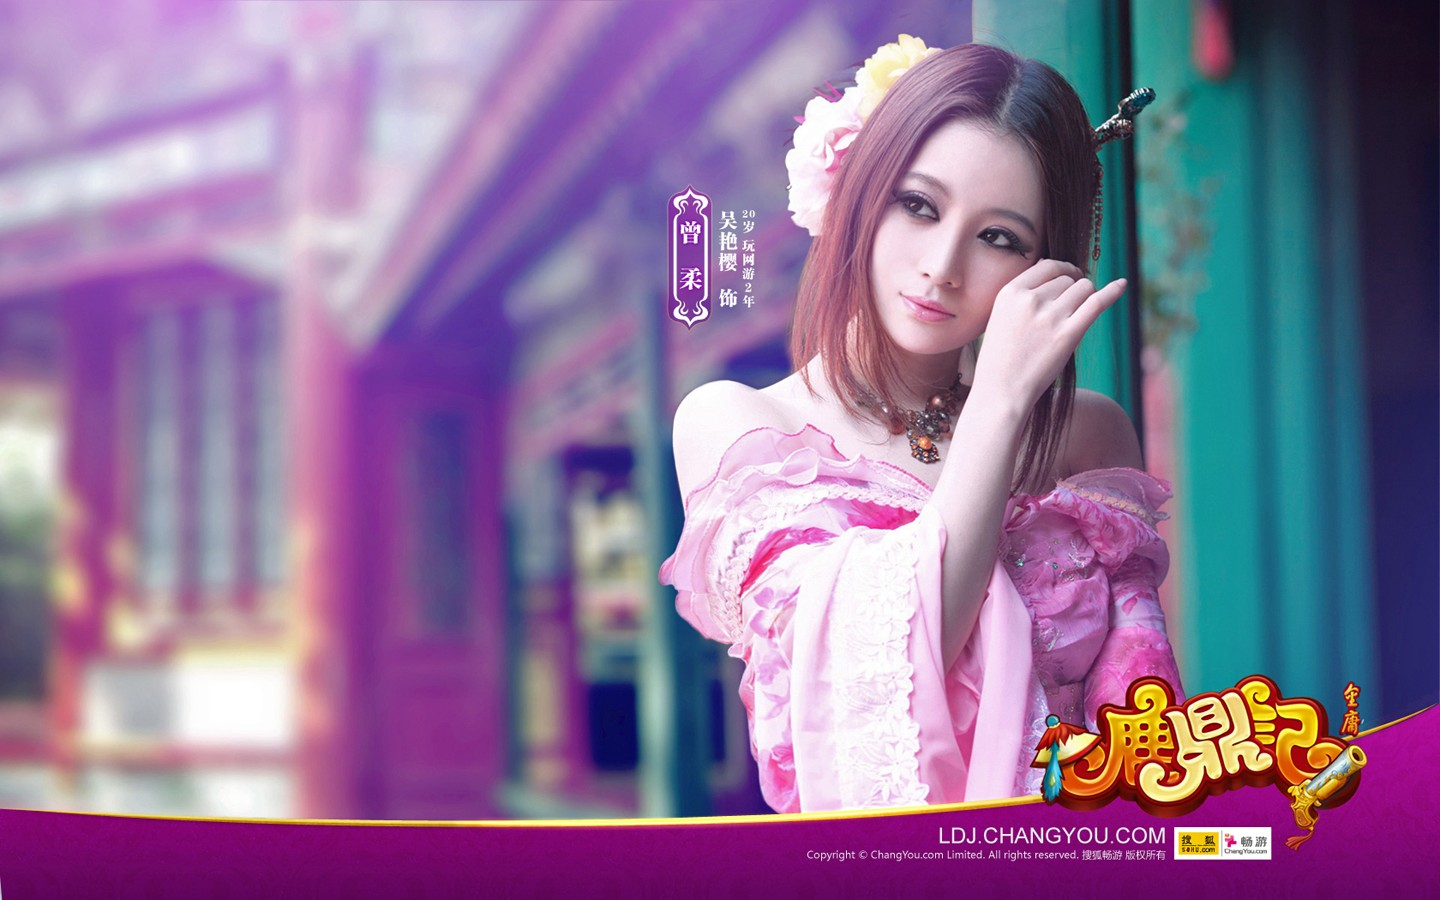 Deer Game Cosplay Official beautiful wallpaper 29842